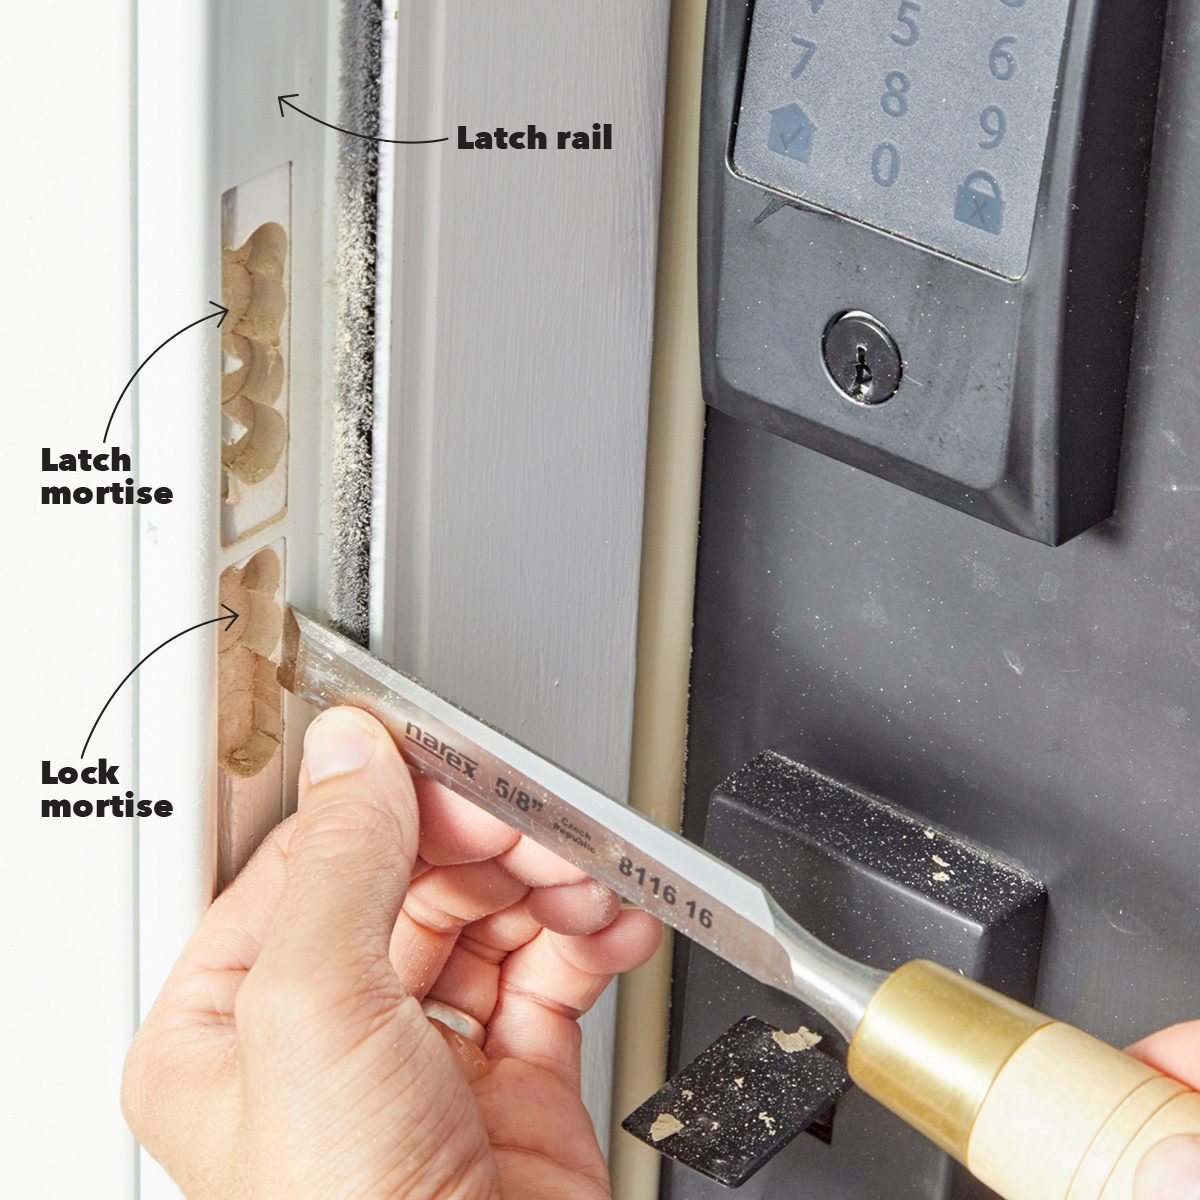 Make room for the Latch and Deadbolt